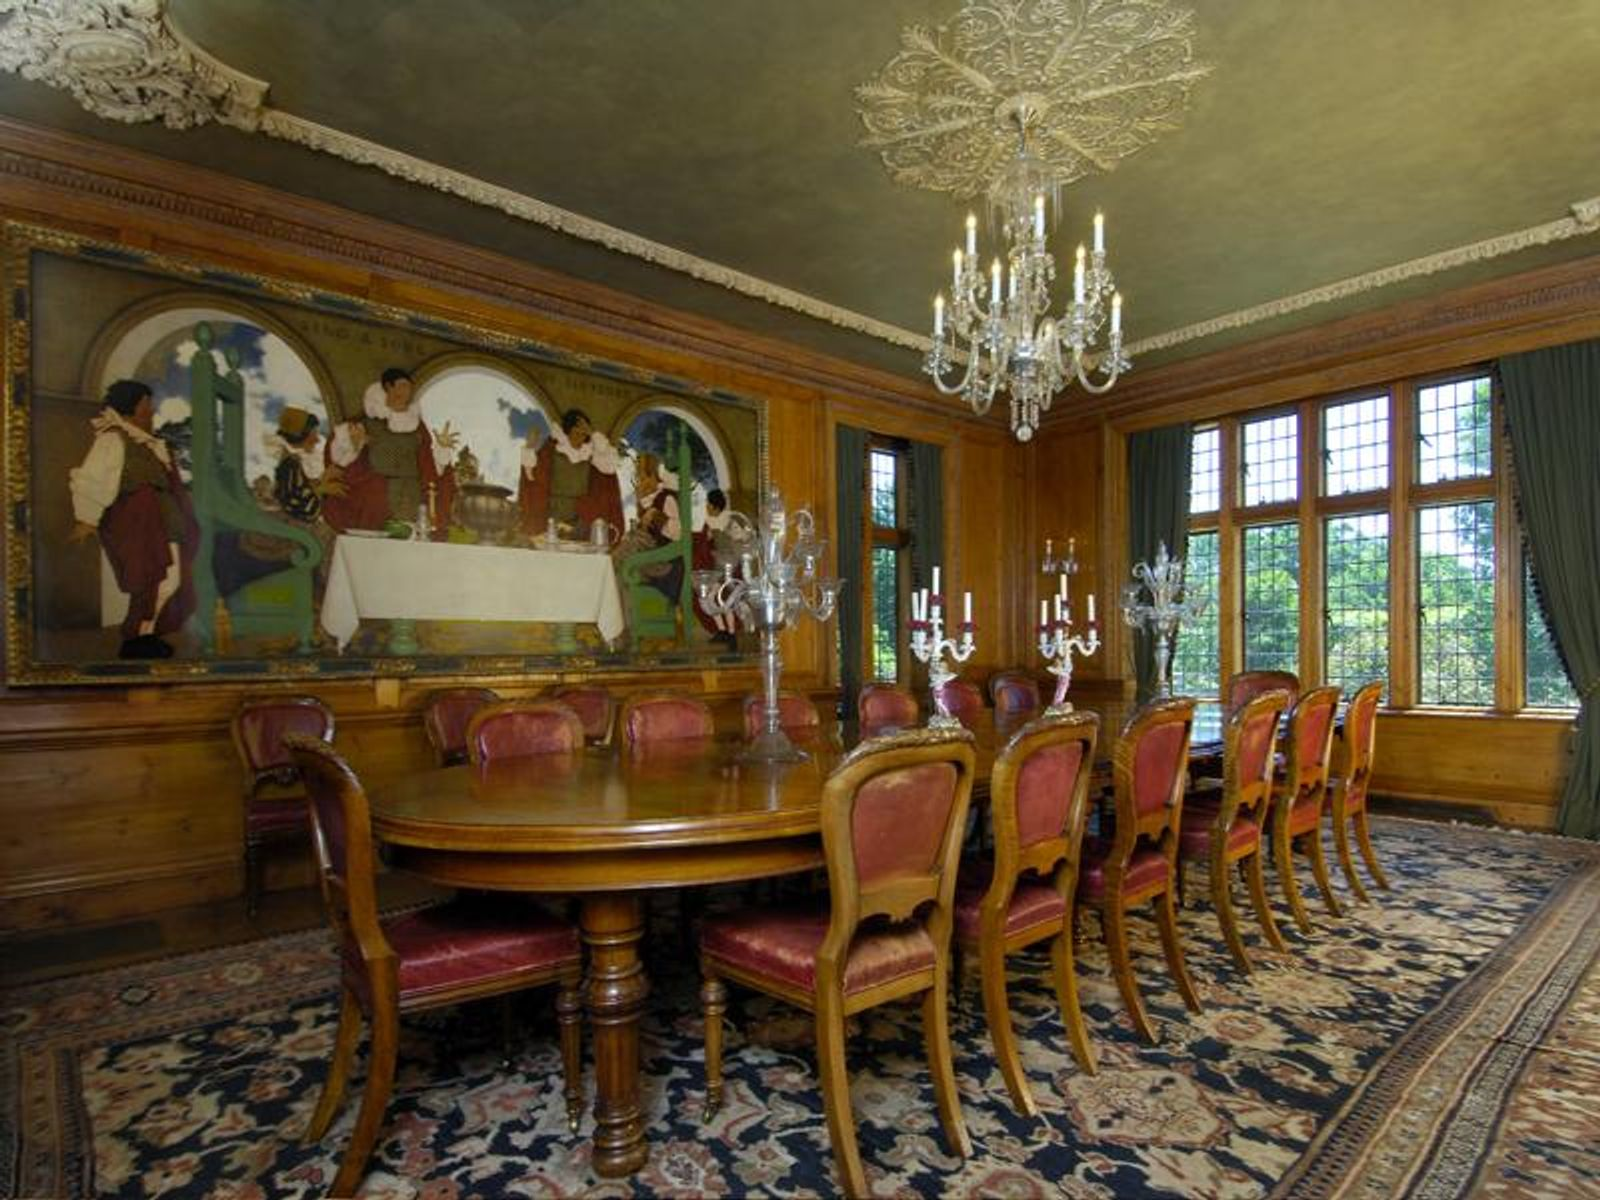 Paneled Banquet-Style Dining Room